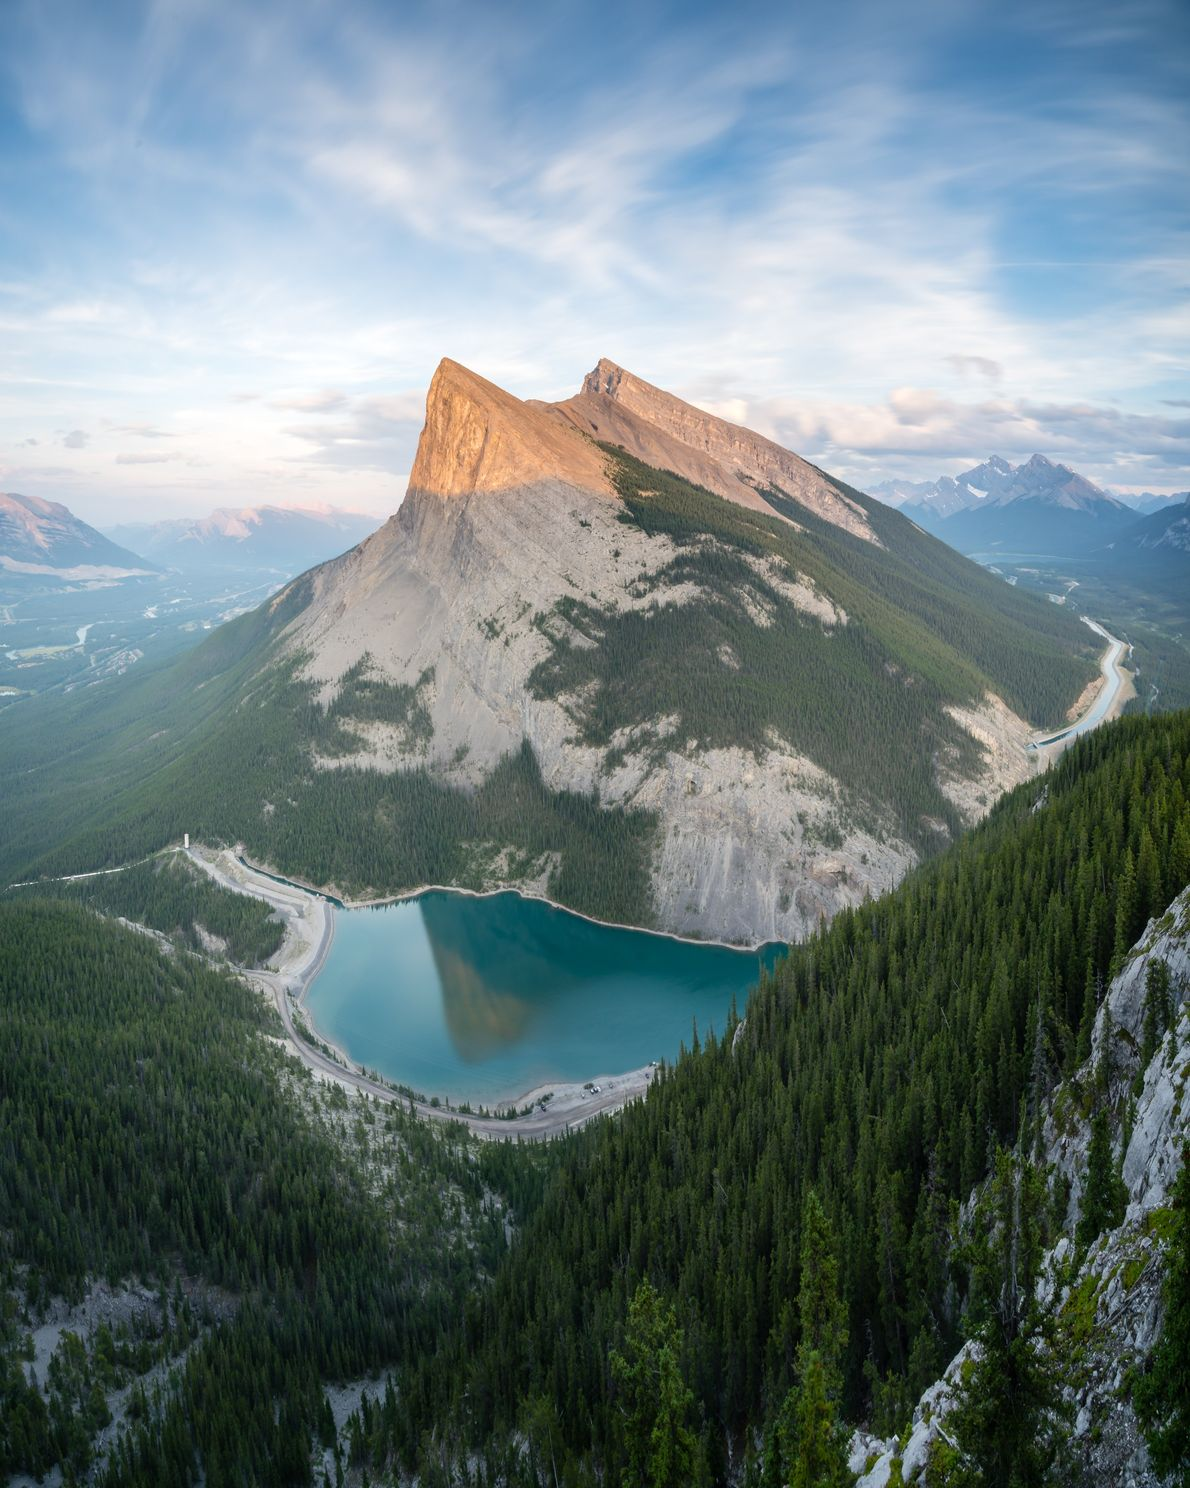 Sunset from high above Canmore, Alberta. The two mountains are part of the Canmore Triple Crown ...